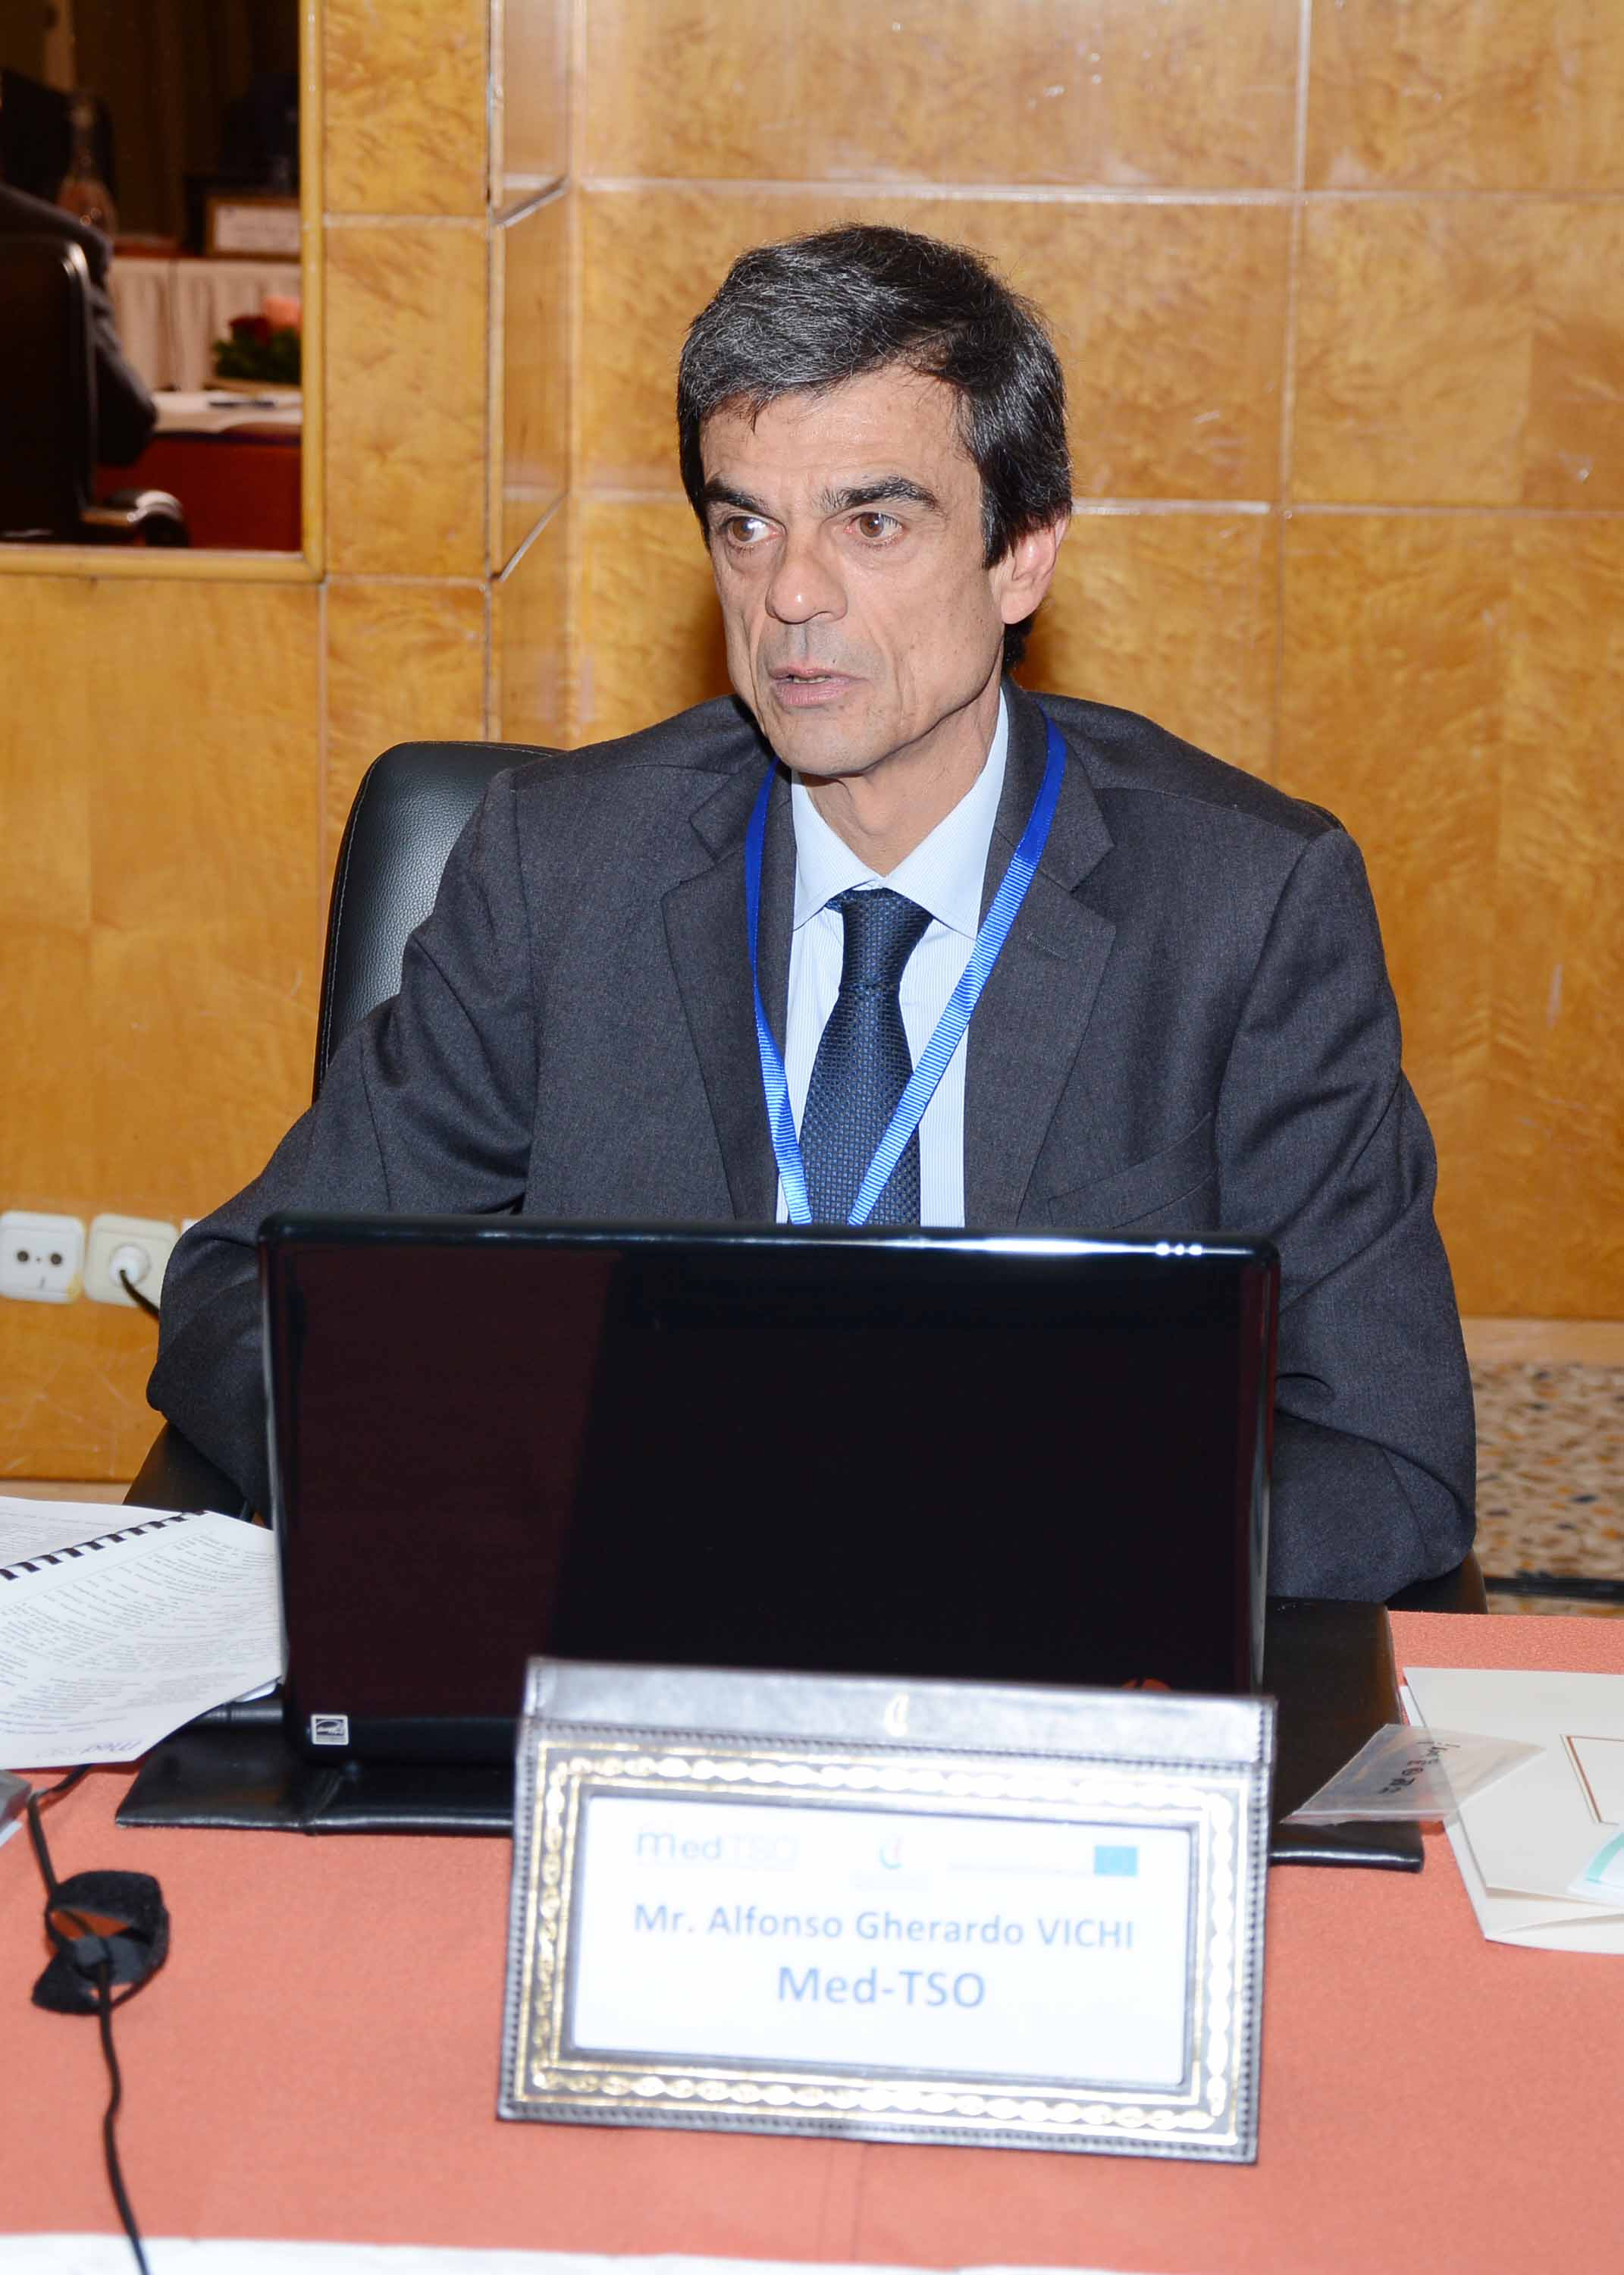 During the Executive Board meeting: Med-TSO Financial Manager and Treasurer Mr. Vichi